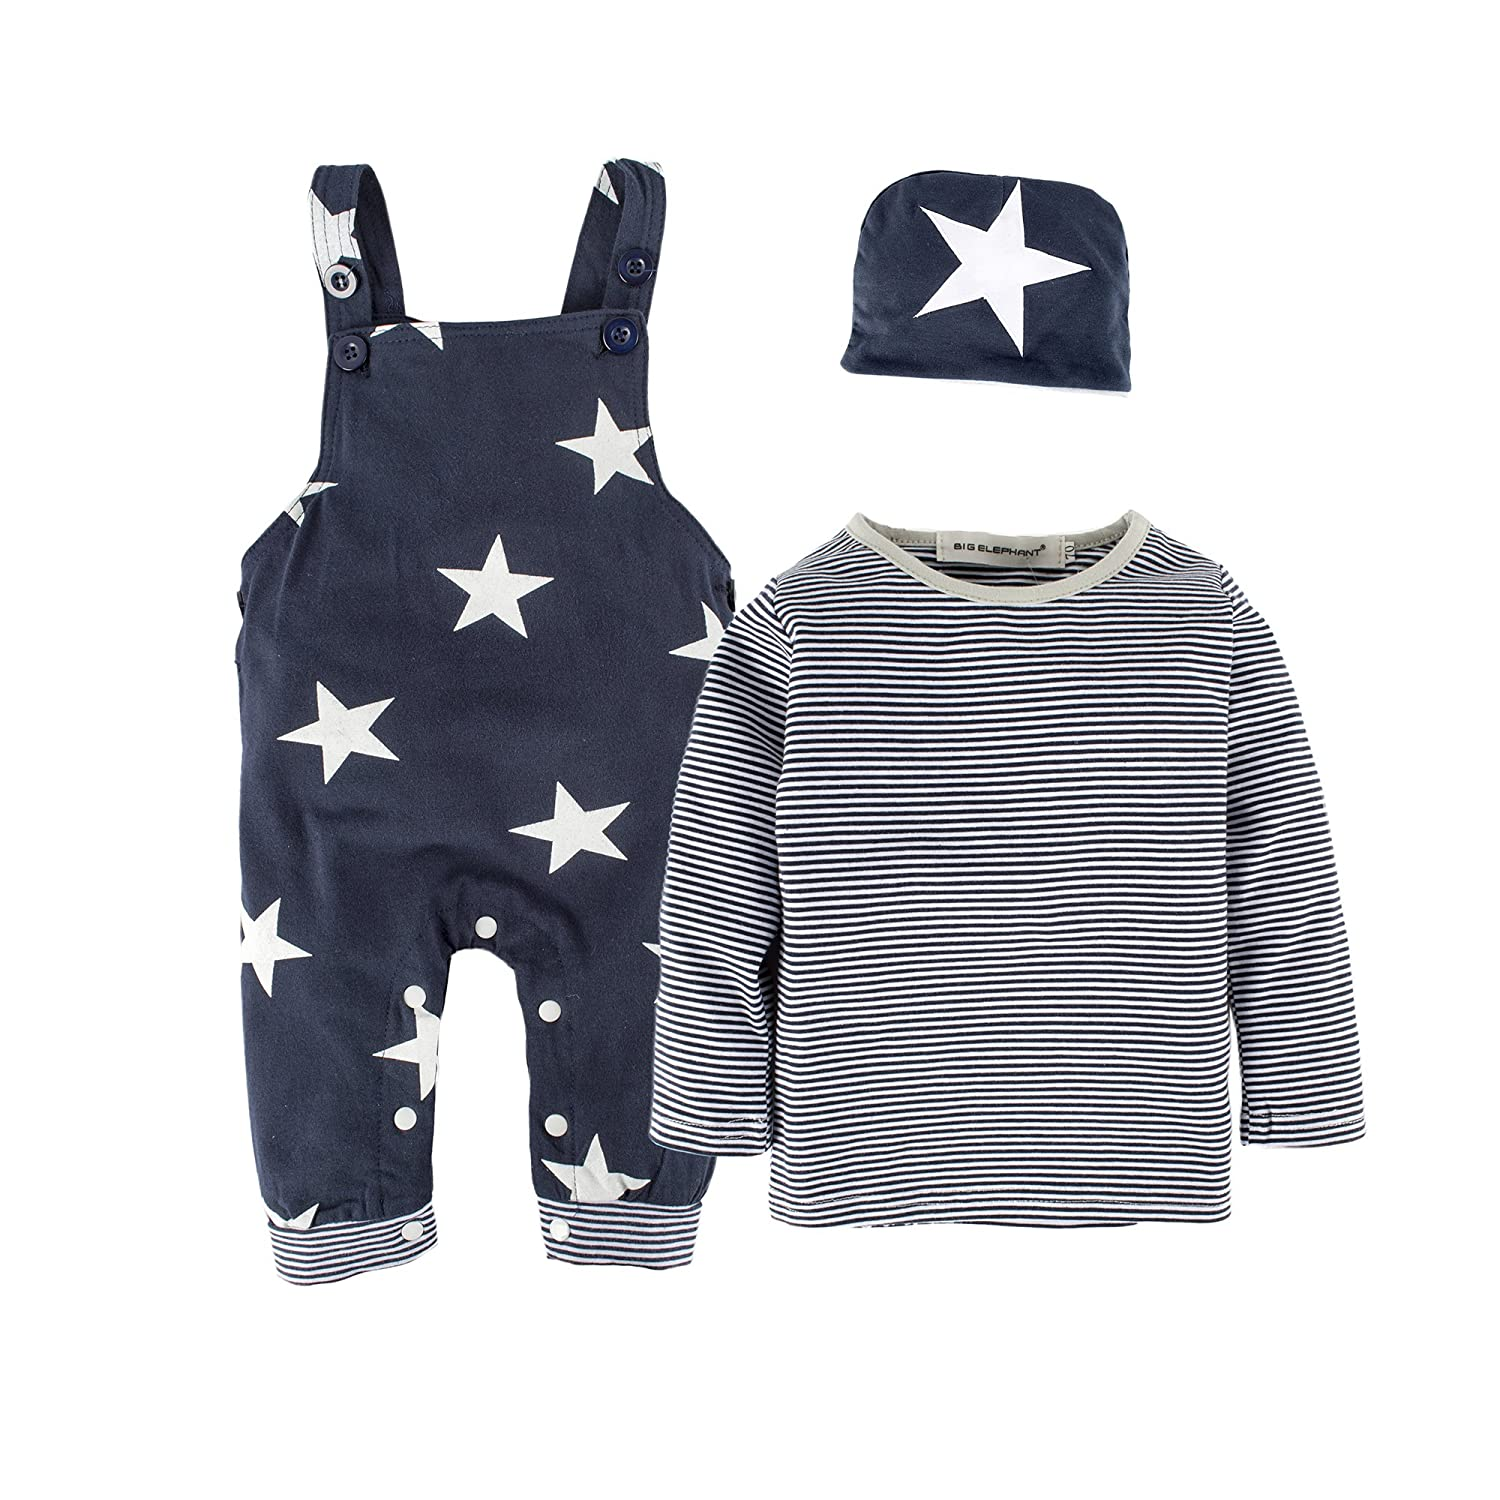 BIG ELEPHANT 3 Pieces Baby Boys' Long Sleeve Shirt Overalls Clothing Set with Hat H92